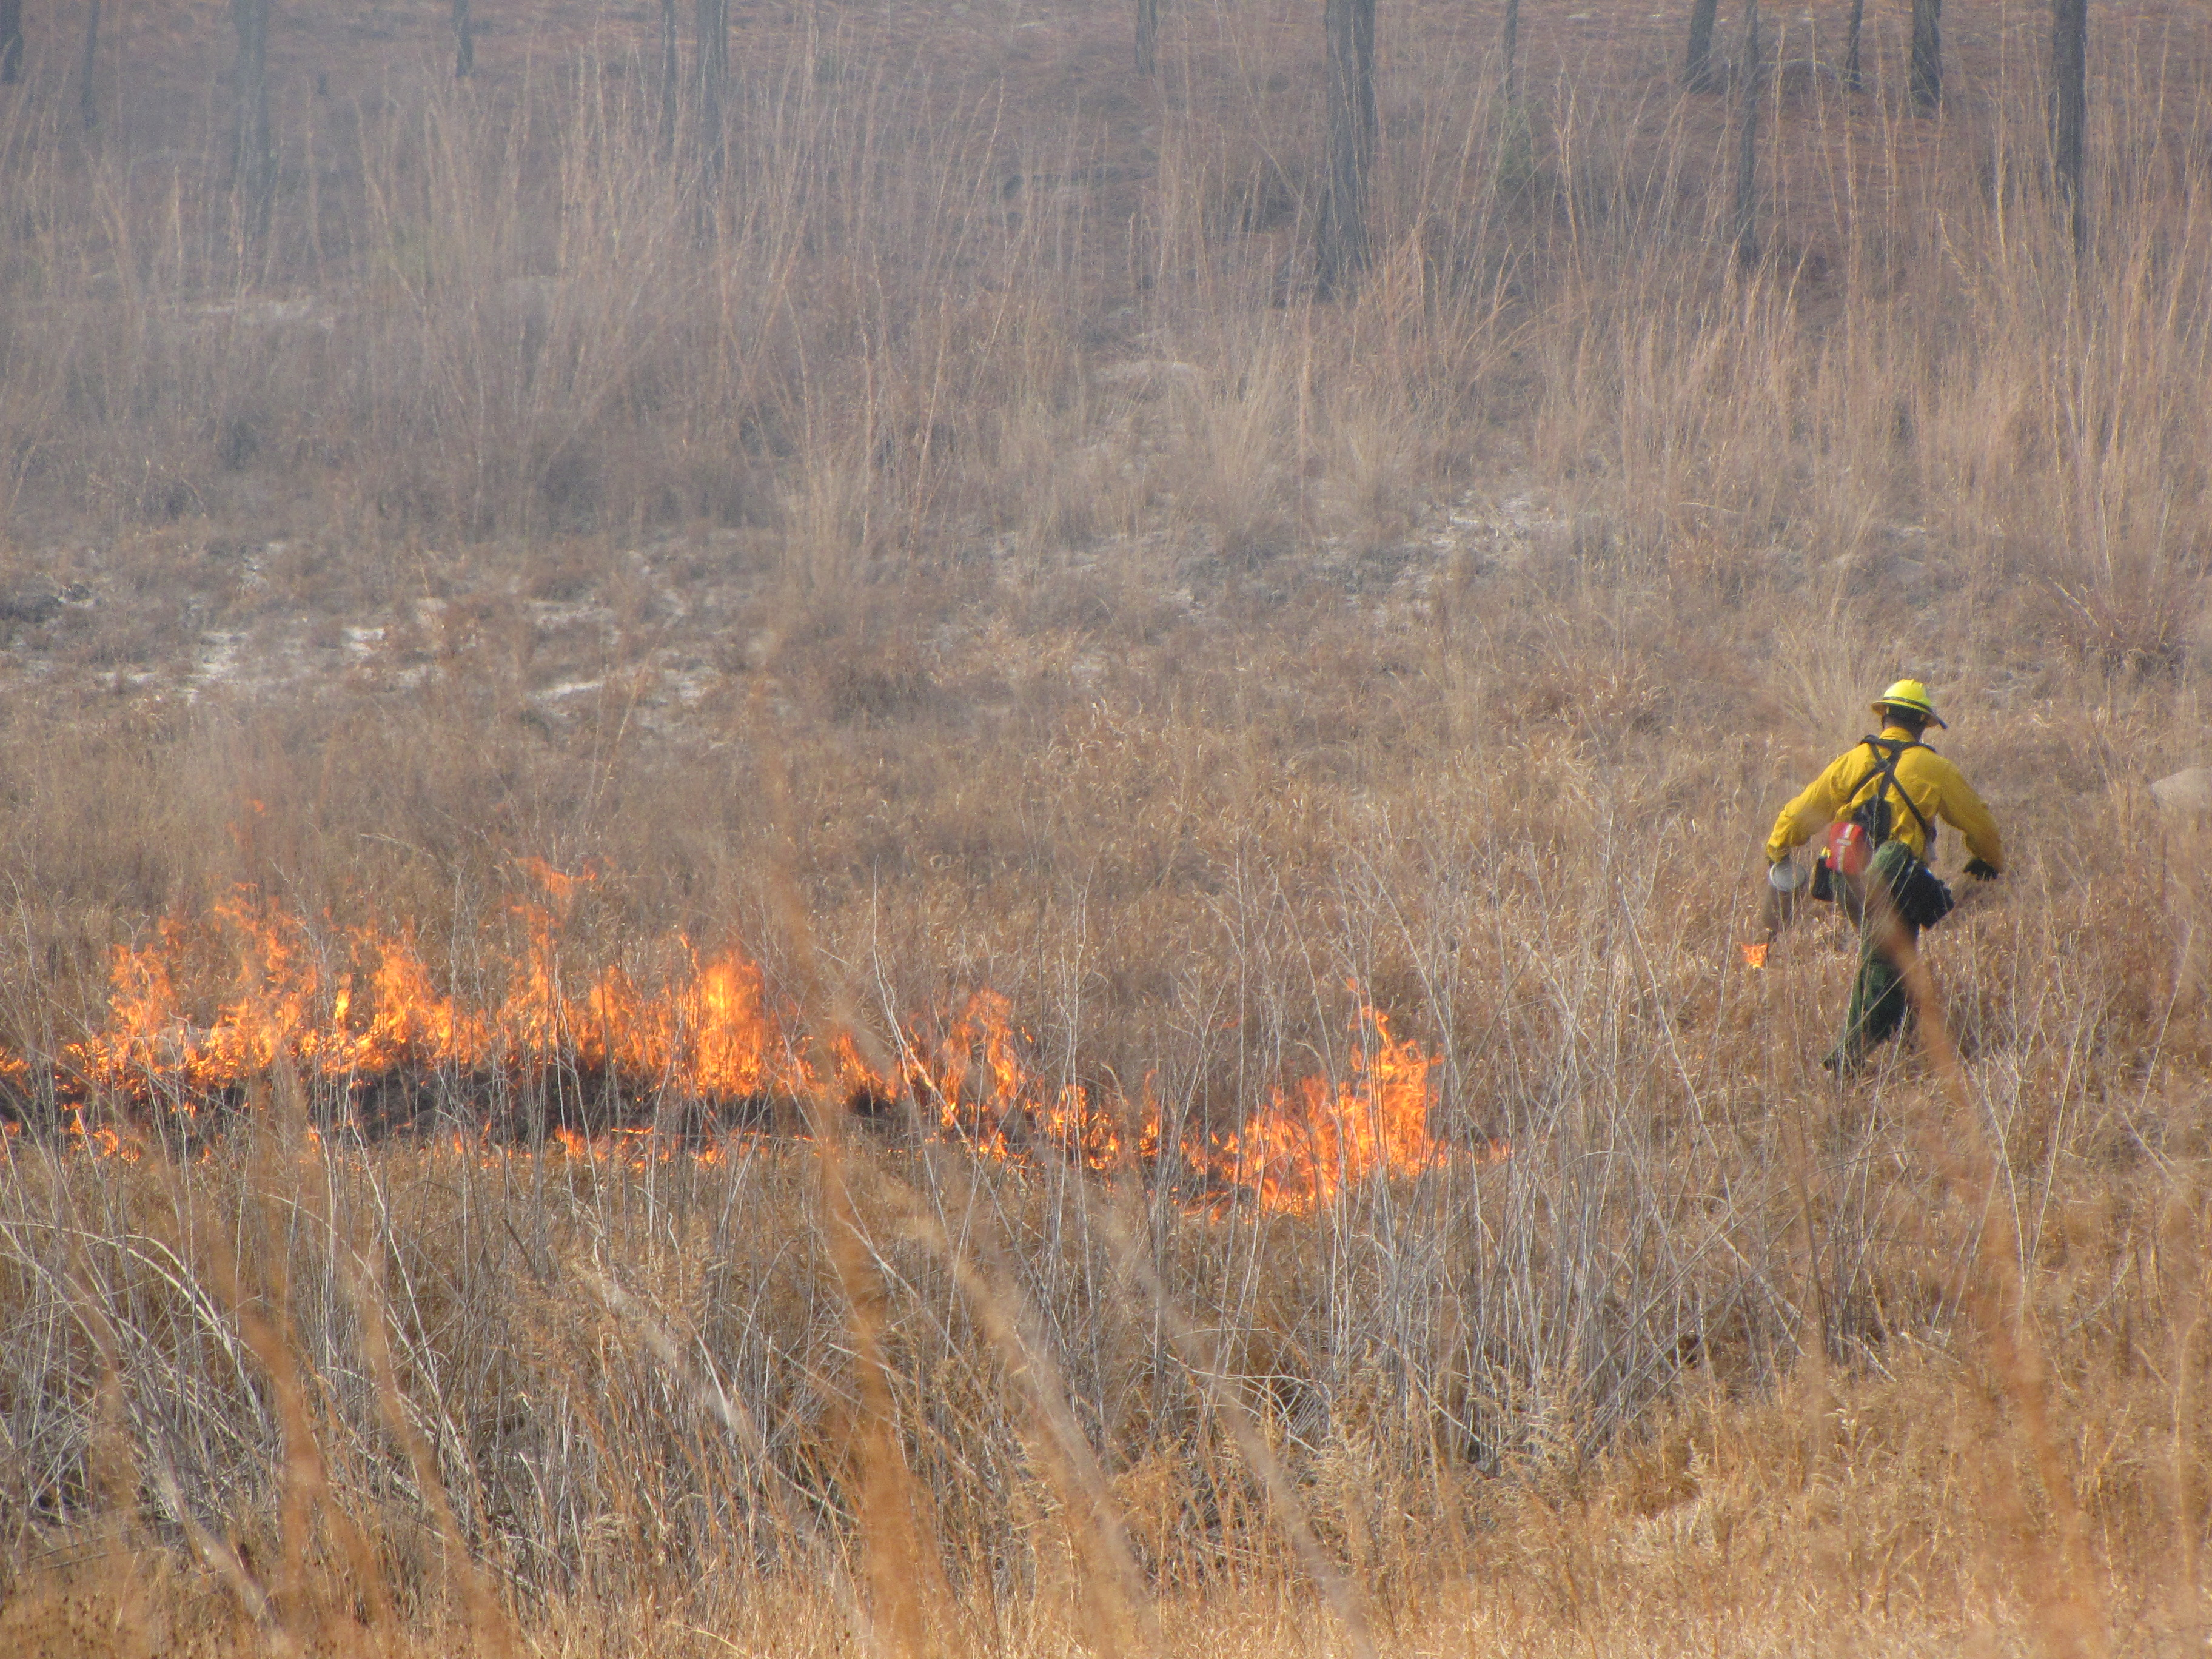 Fire crew igniting prairie with drip torch